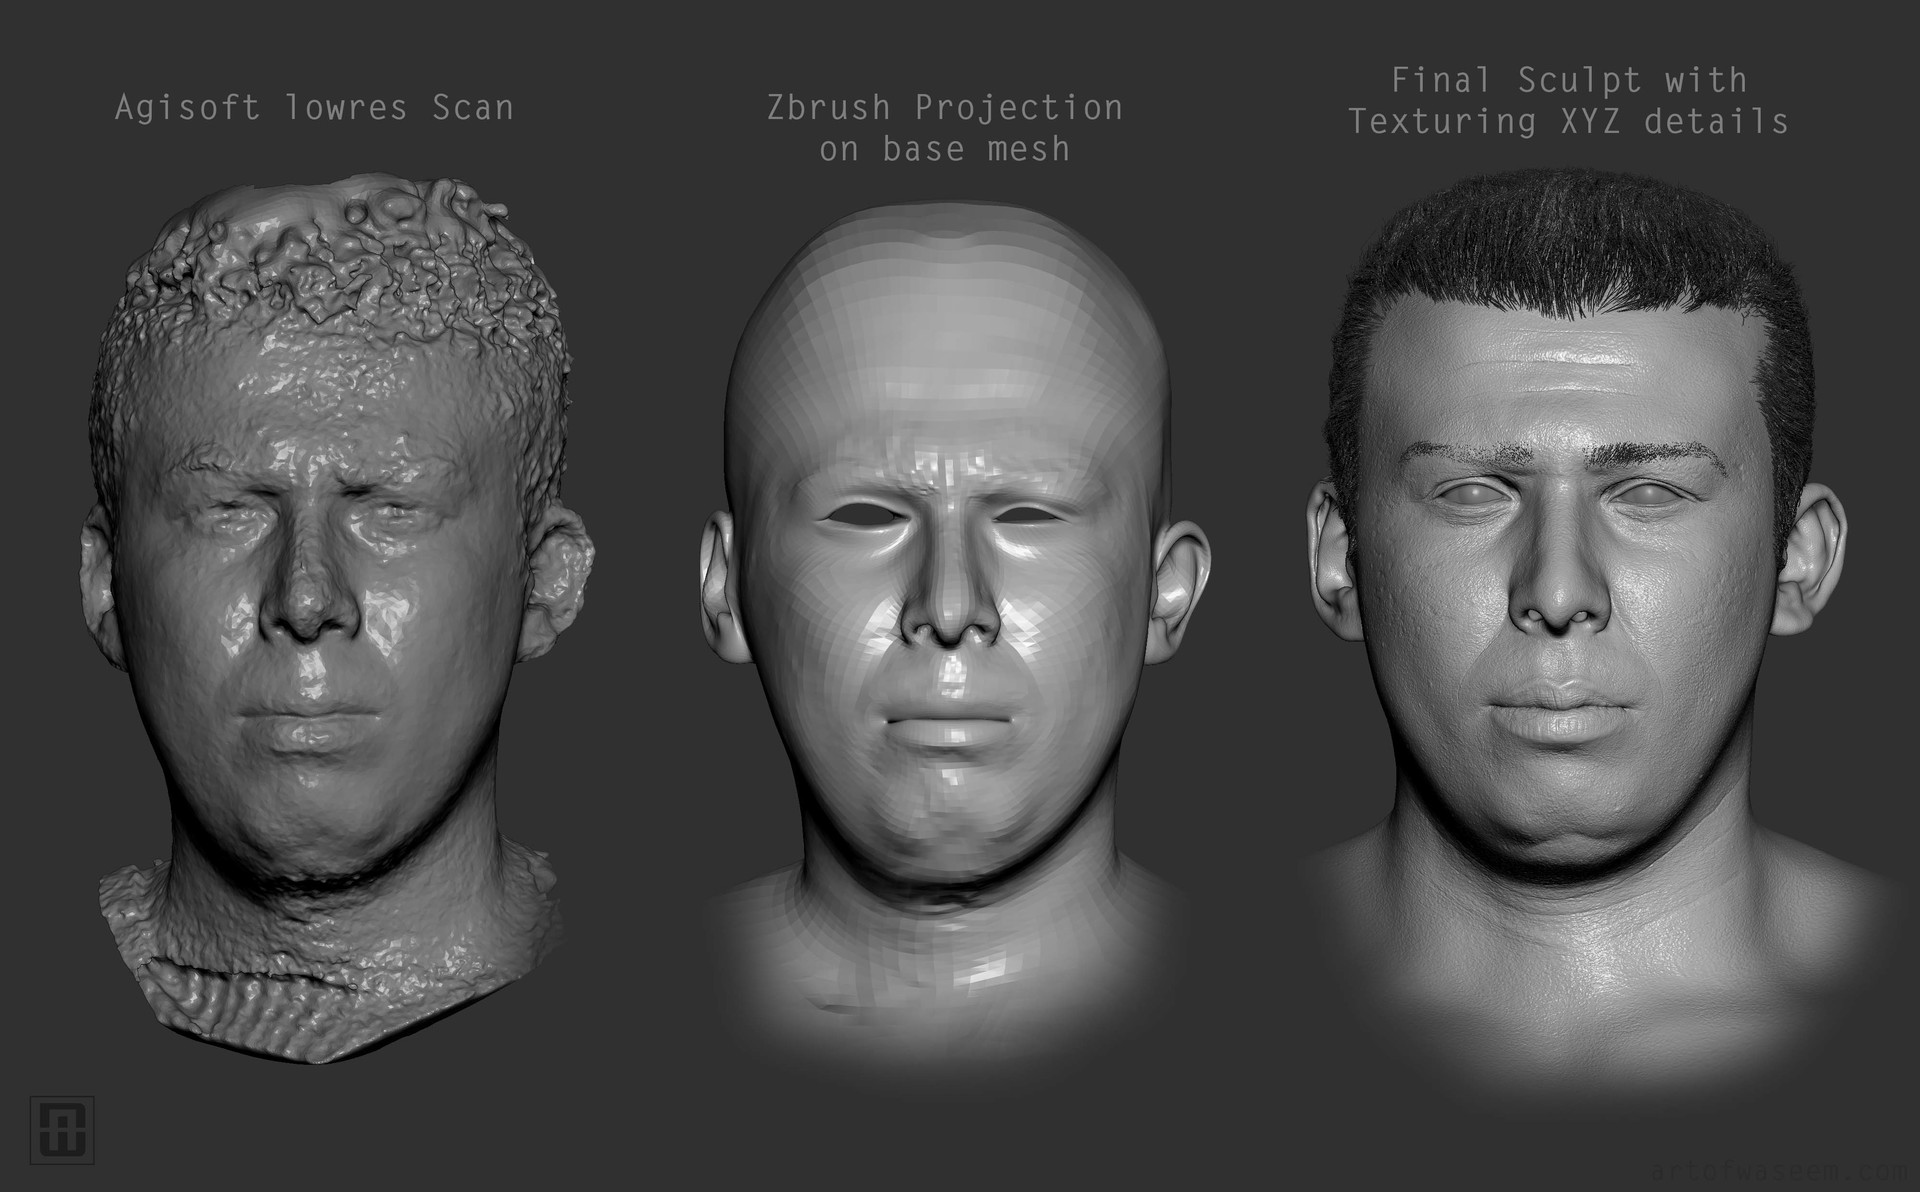 Process from Scan to Finished Sculpt.